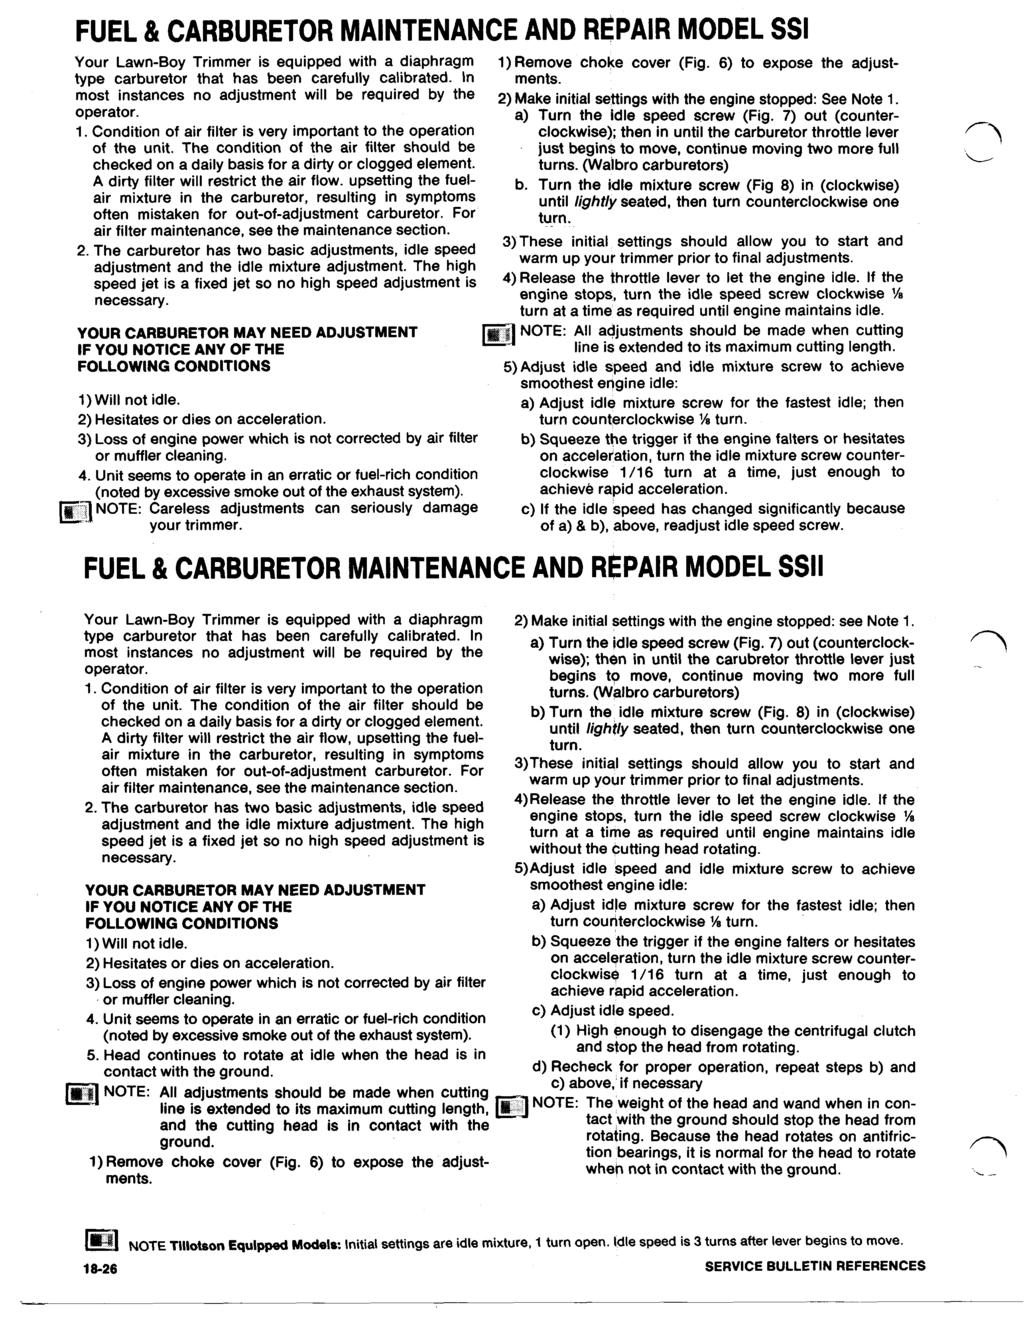 2) Make initial settings with the engine stopped: See Note 1  - PDF